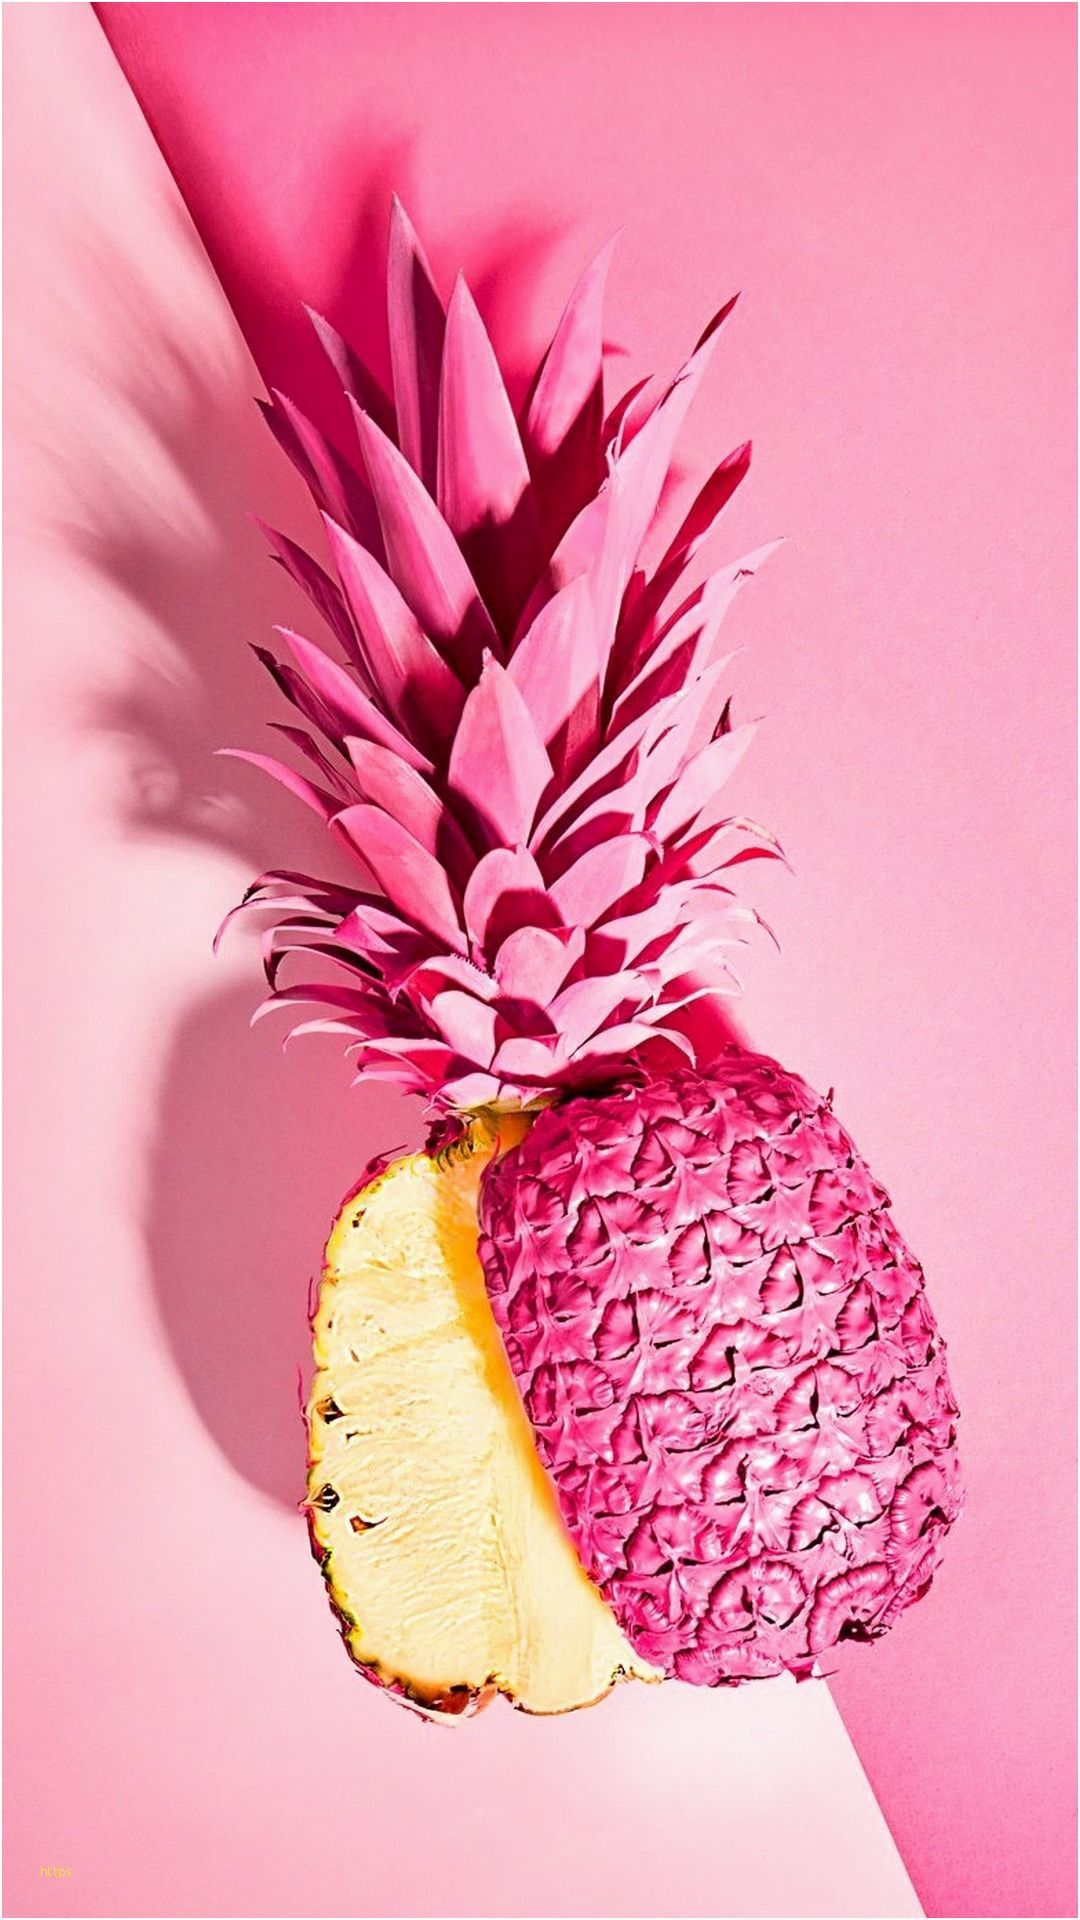 Pineapple Summer Wallpaper Android Download in 2020 Pink